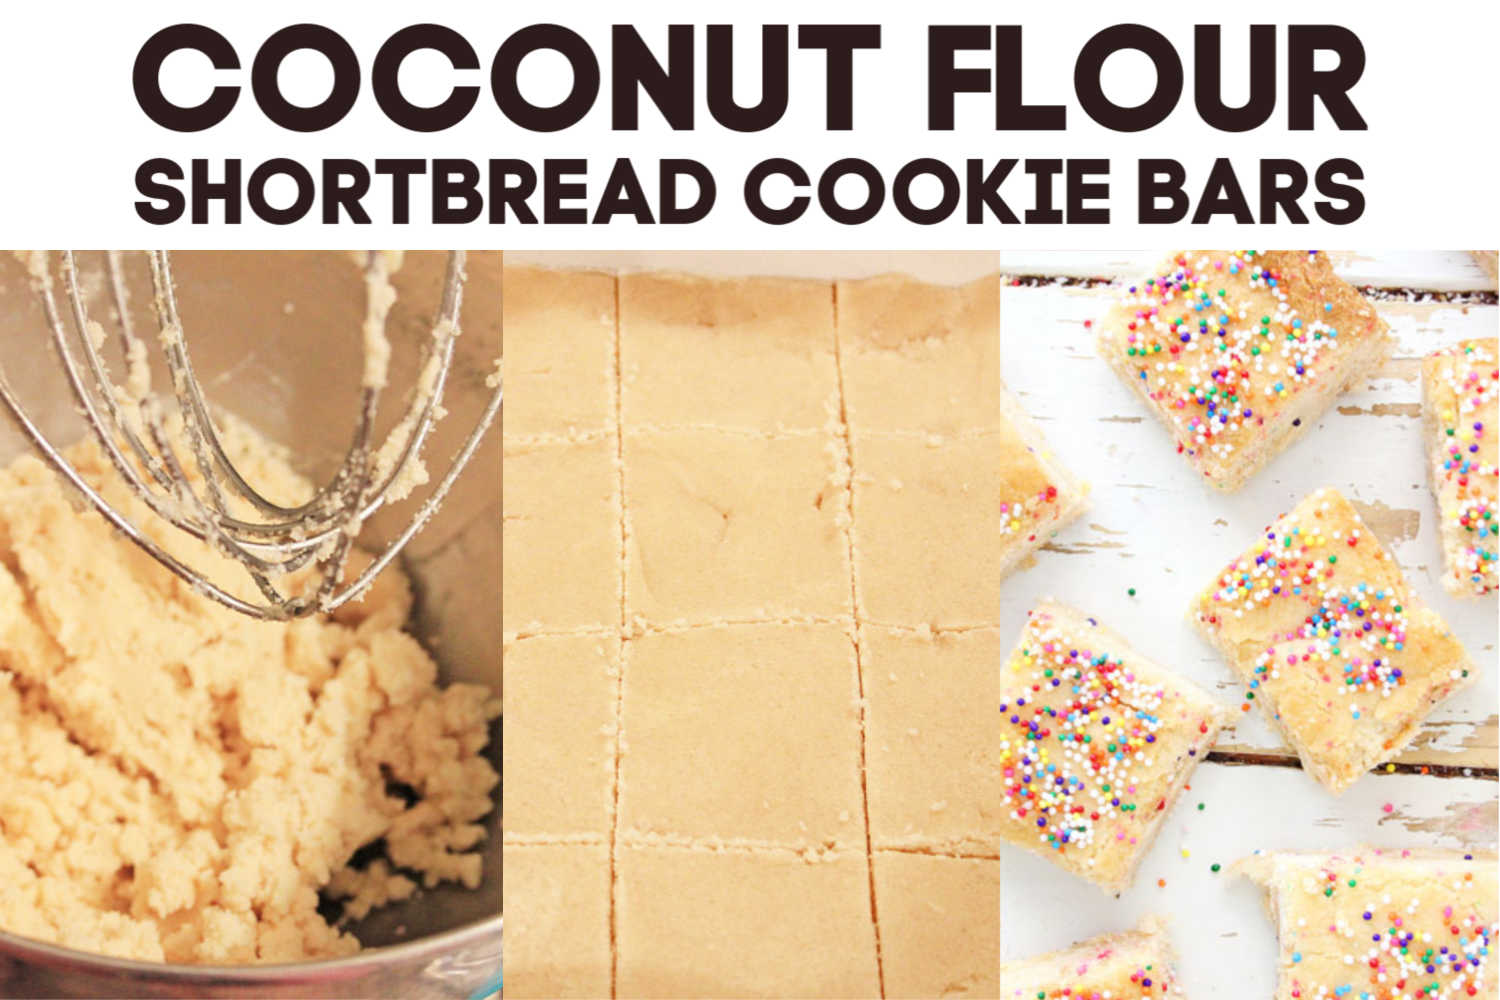 three images for coconut flour shortbread cookies showing the steps to prepare and bake